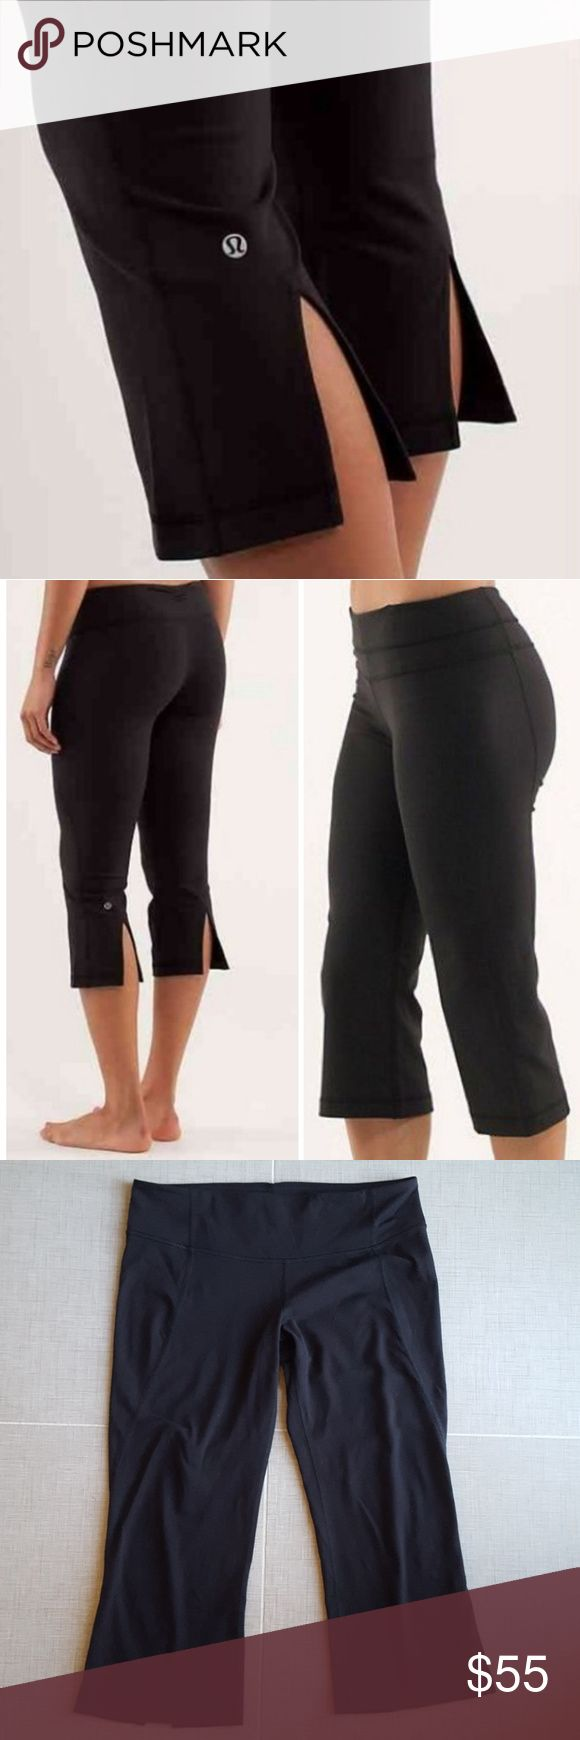 "lululemon crops lululemon flare crops in brand new condition, zero pilling. First 2 photos are stock photos, all others are of actual pants for sale. Small storage pocket in front waistband with size dot. 20"" inseam. No trades. Bundle and save! lululemon athletica Pants"